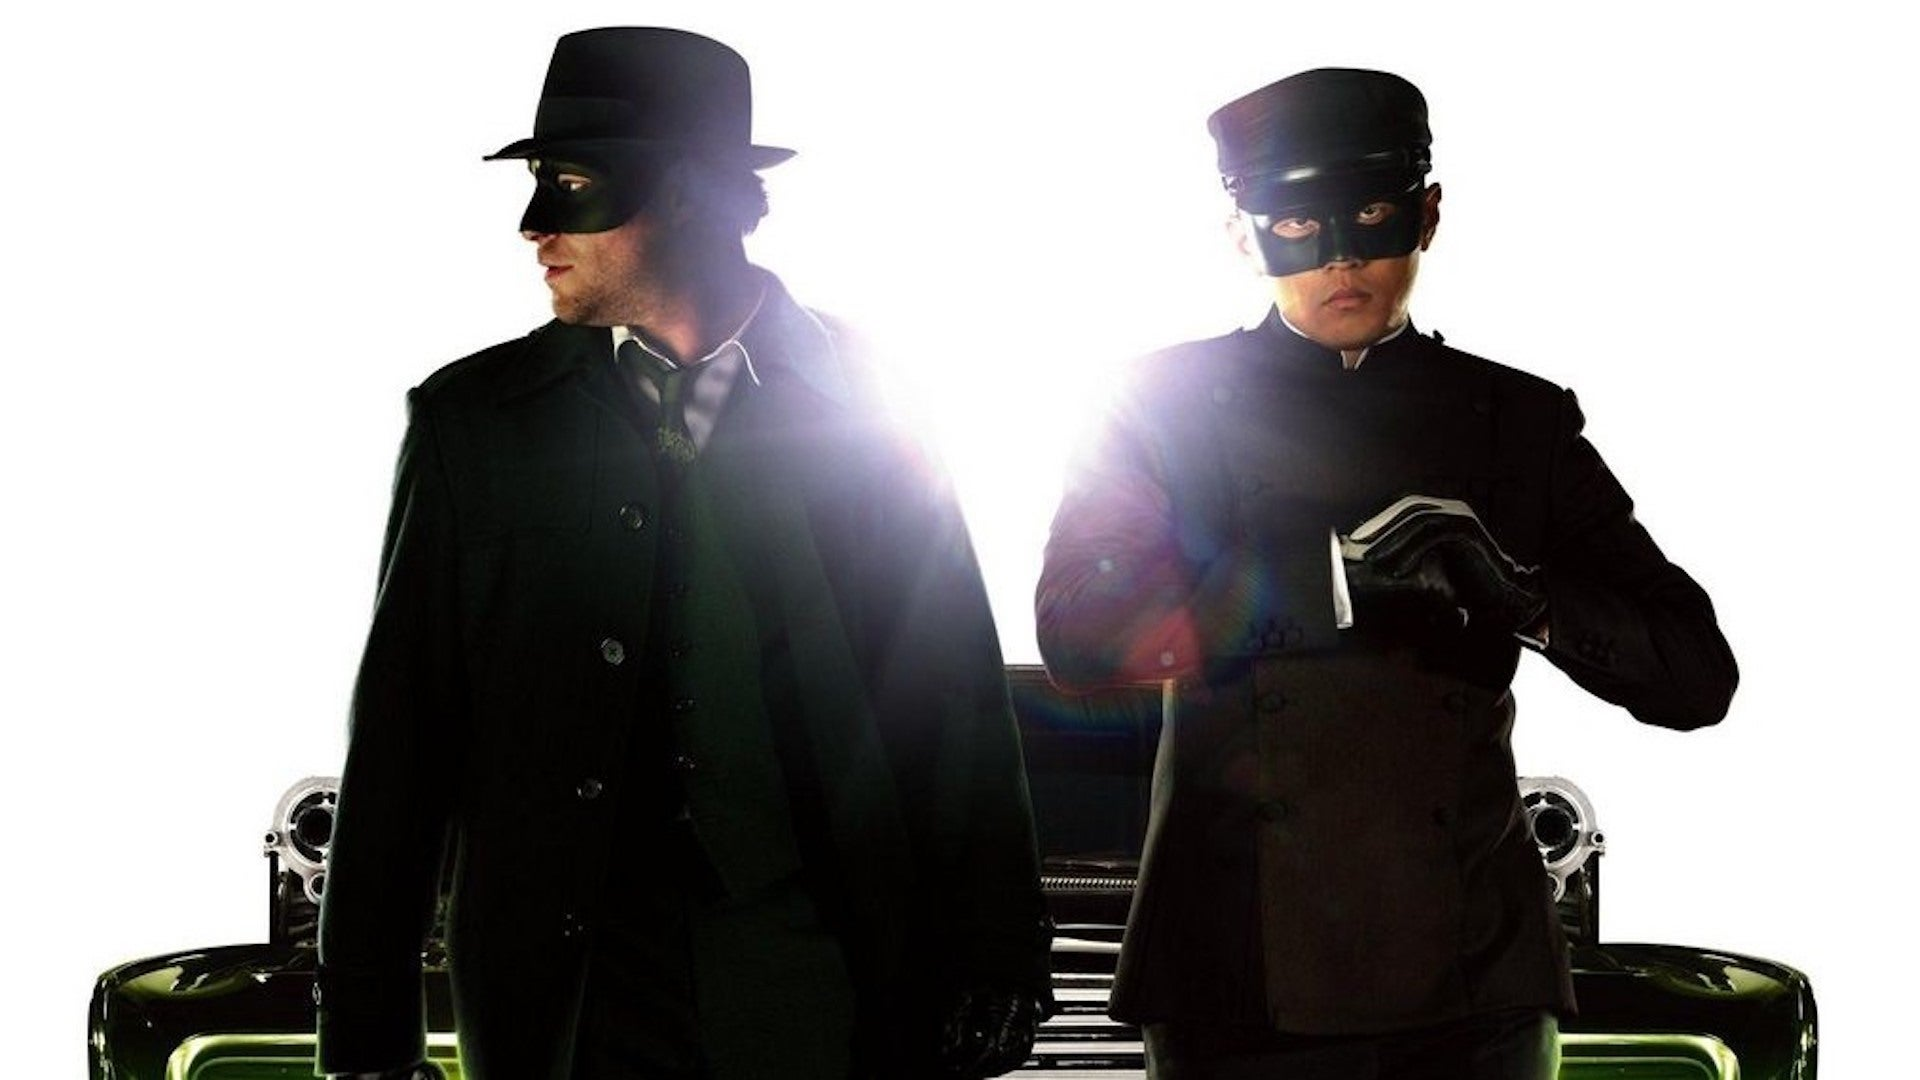 The Green Hornet Movie Review 2011